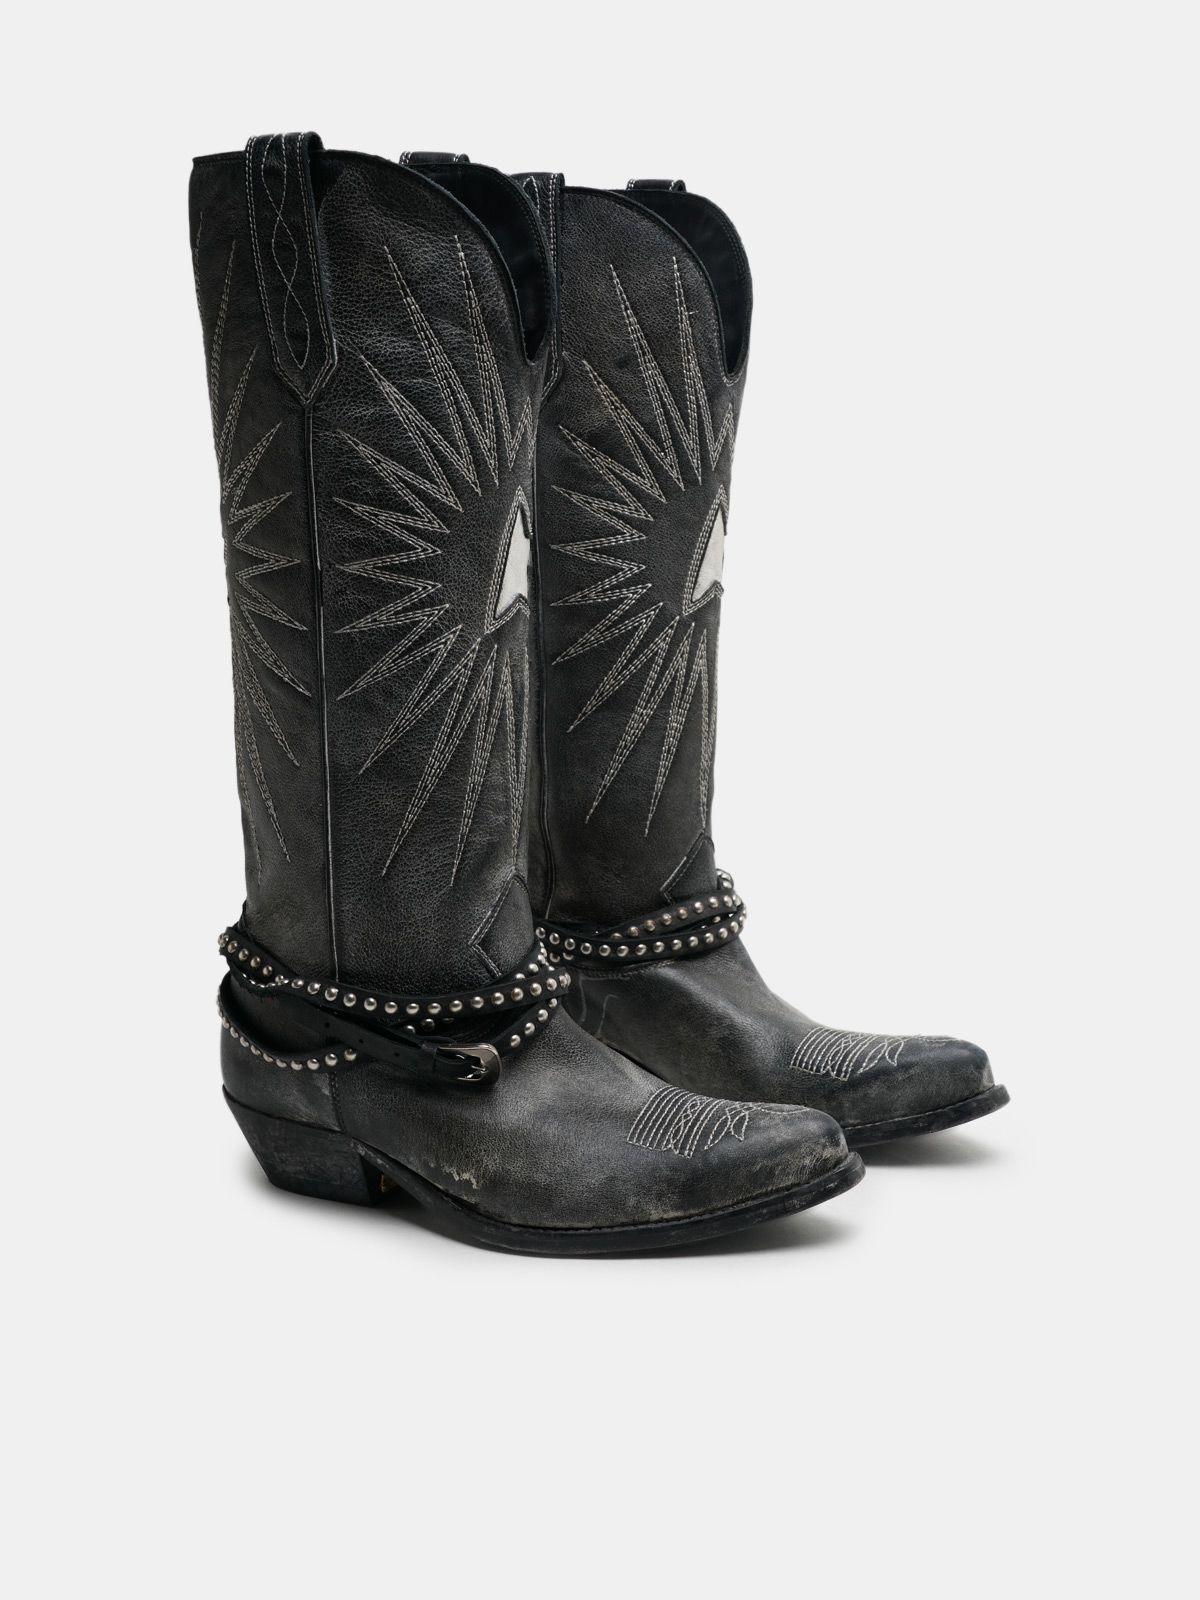 Golden Goose - Wish Star boots in leather with studded strap in